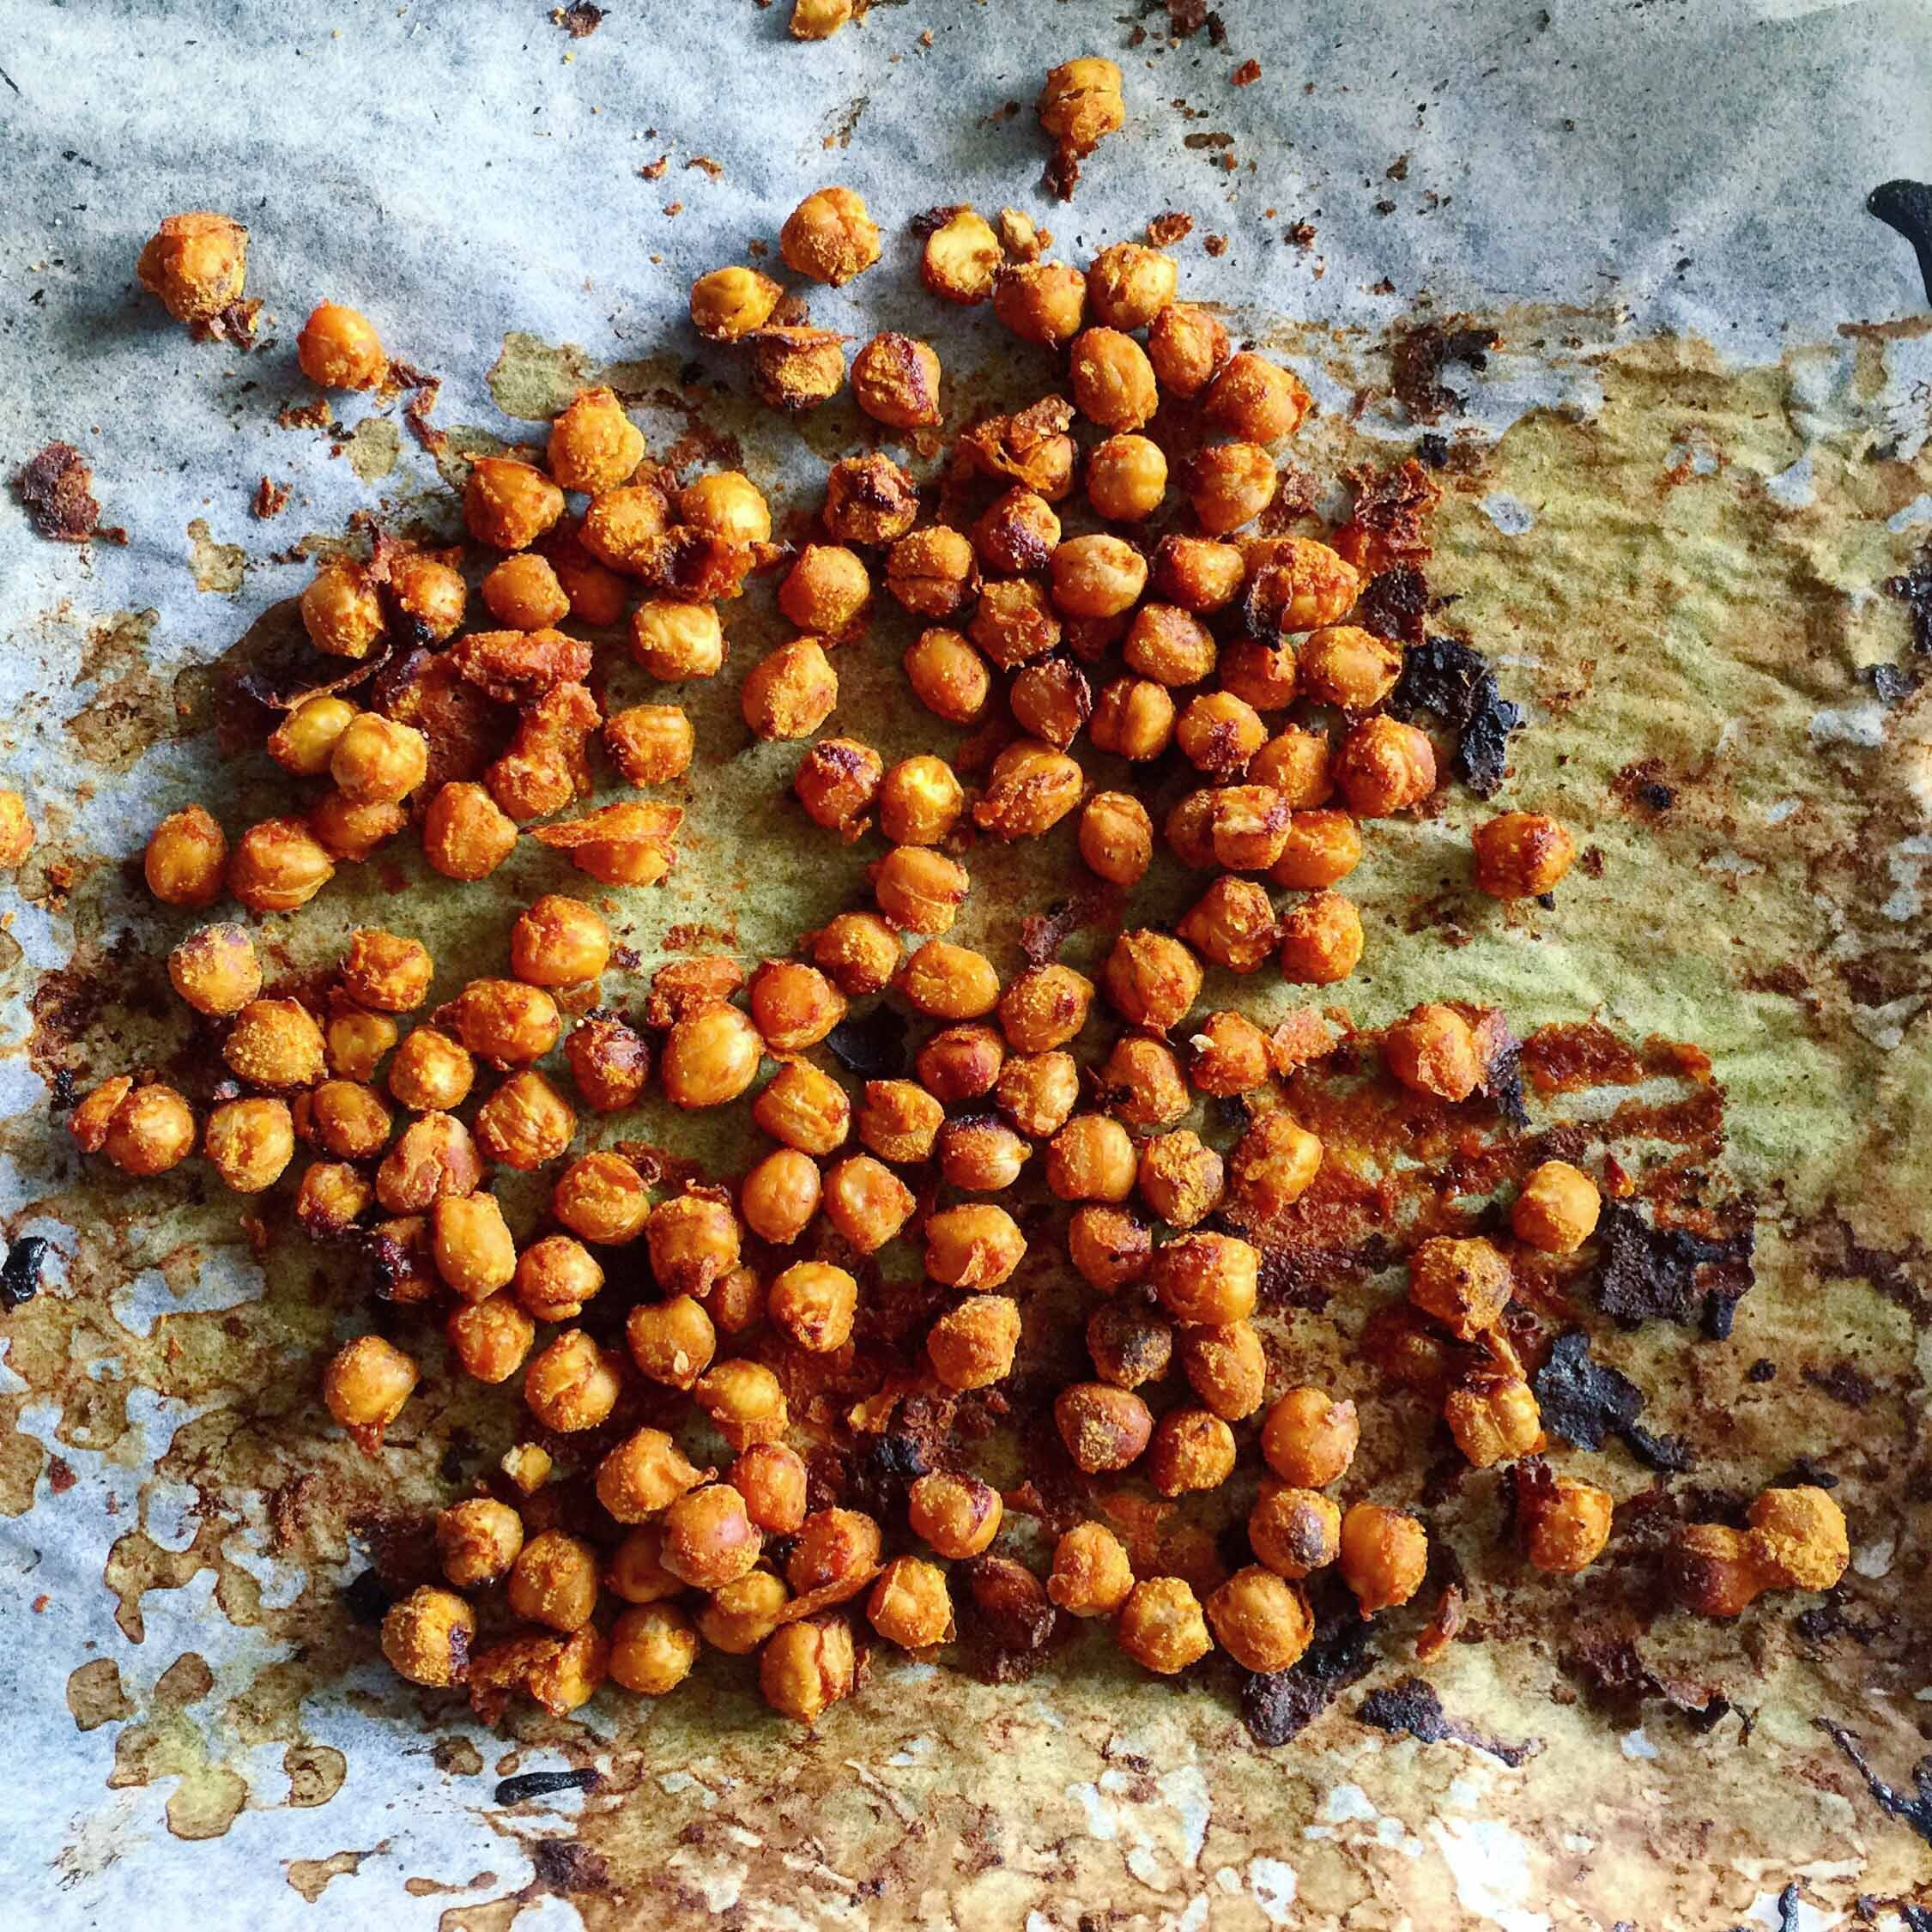 How to Make Chickpeas Taste Like Cinnamon Toast Crunch